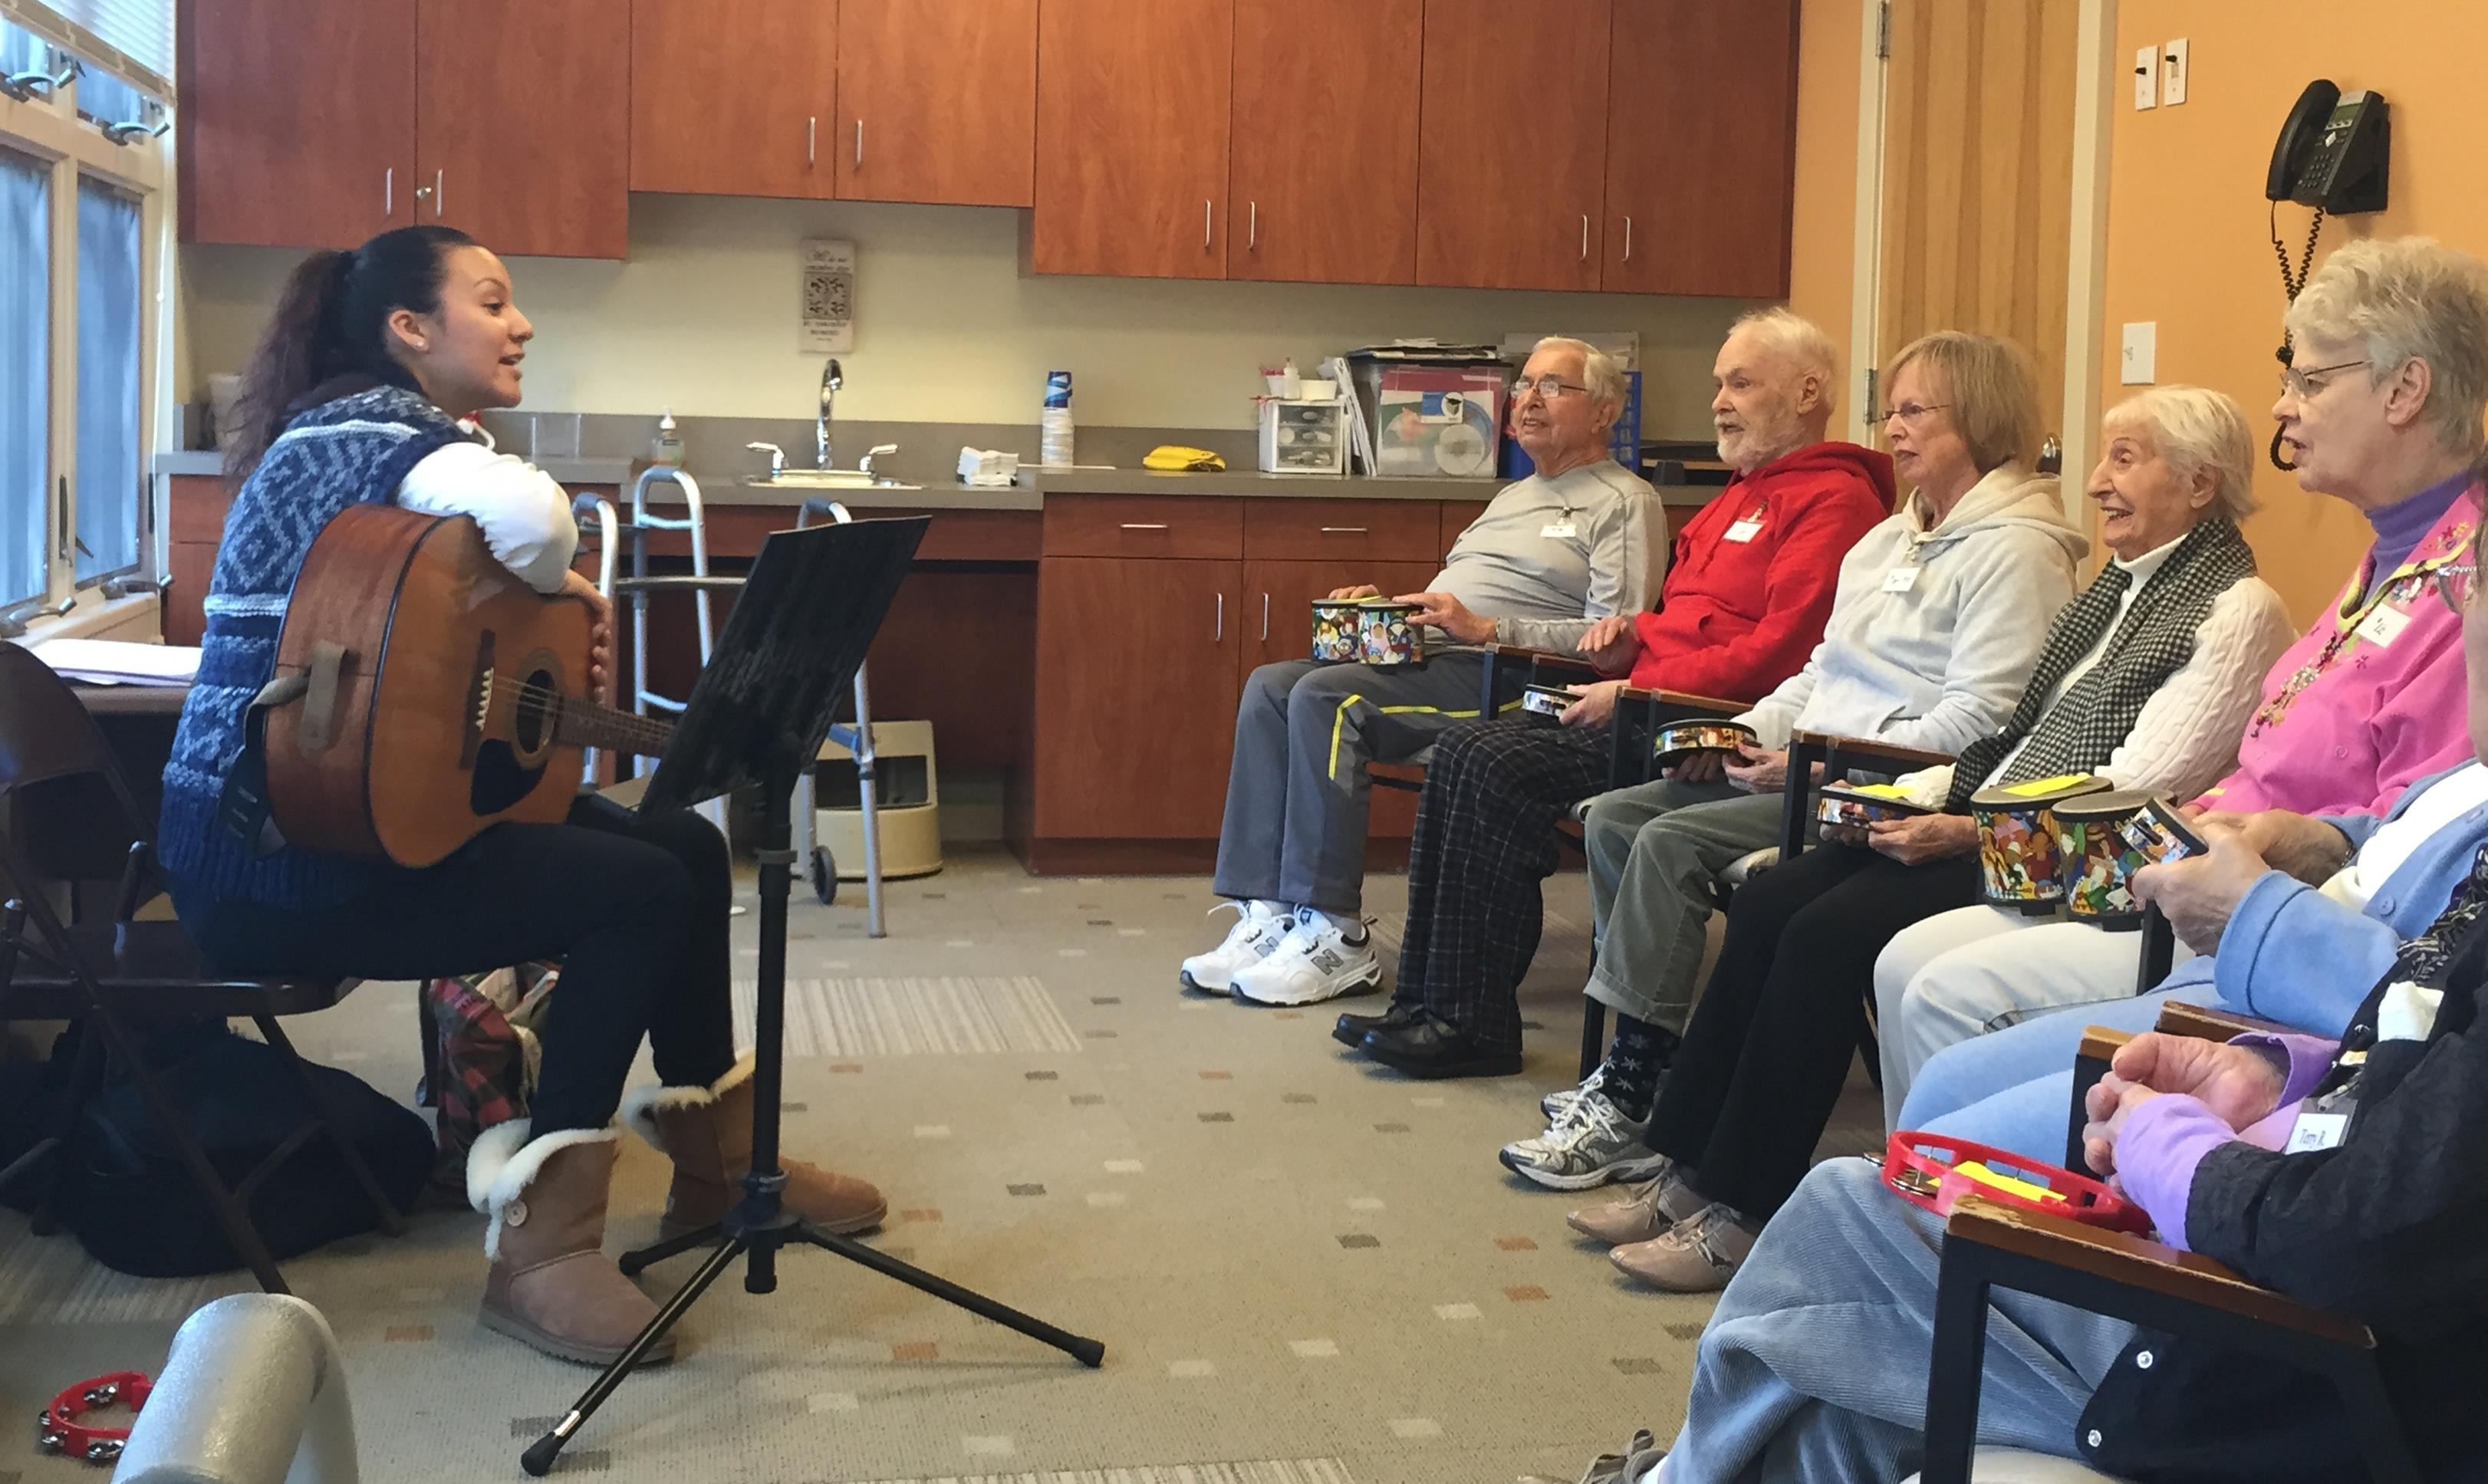 music therapy benefits older adults with alzheimer u2019s and